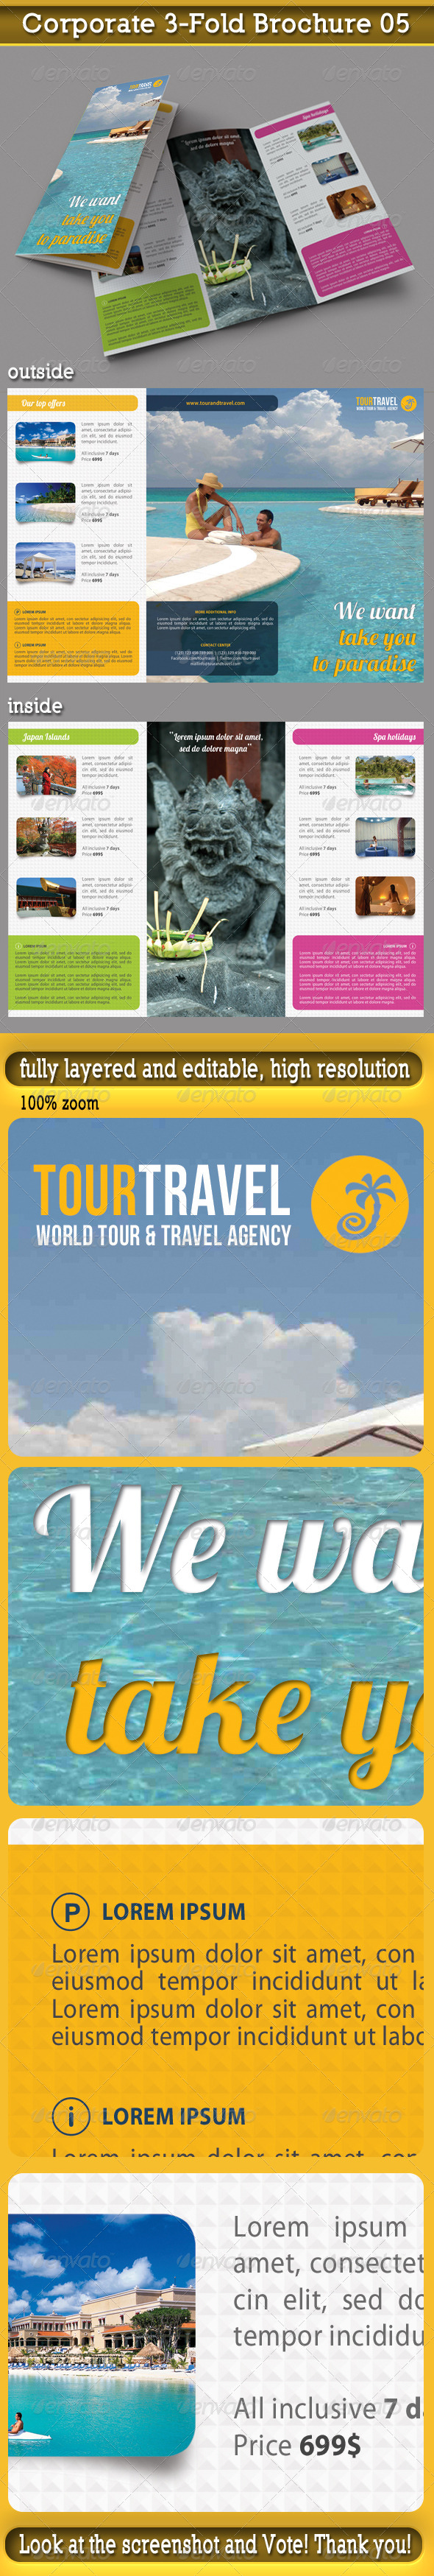 GraphicRiver Travel Agency 3-Fold Brochure 03 5481646